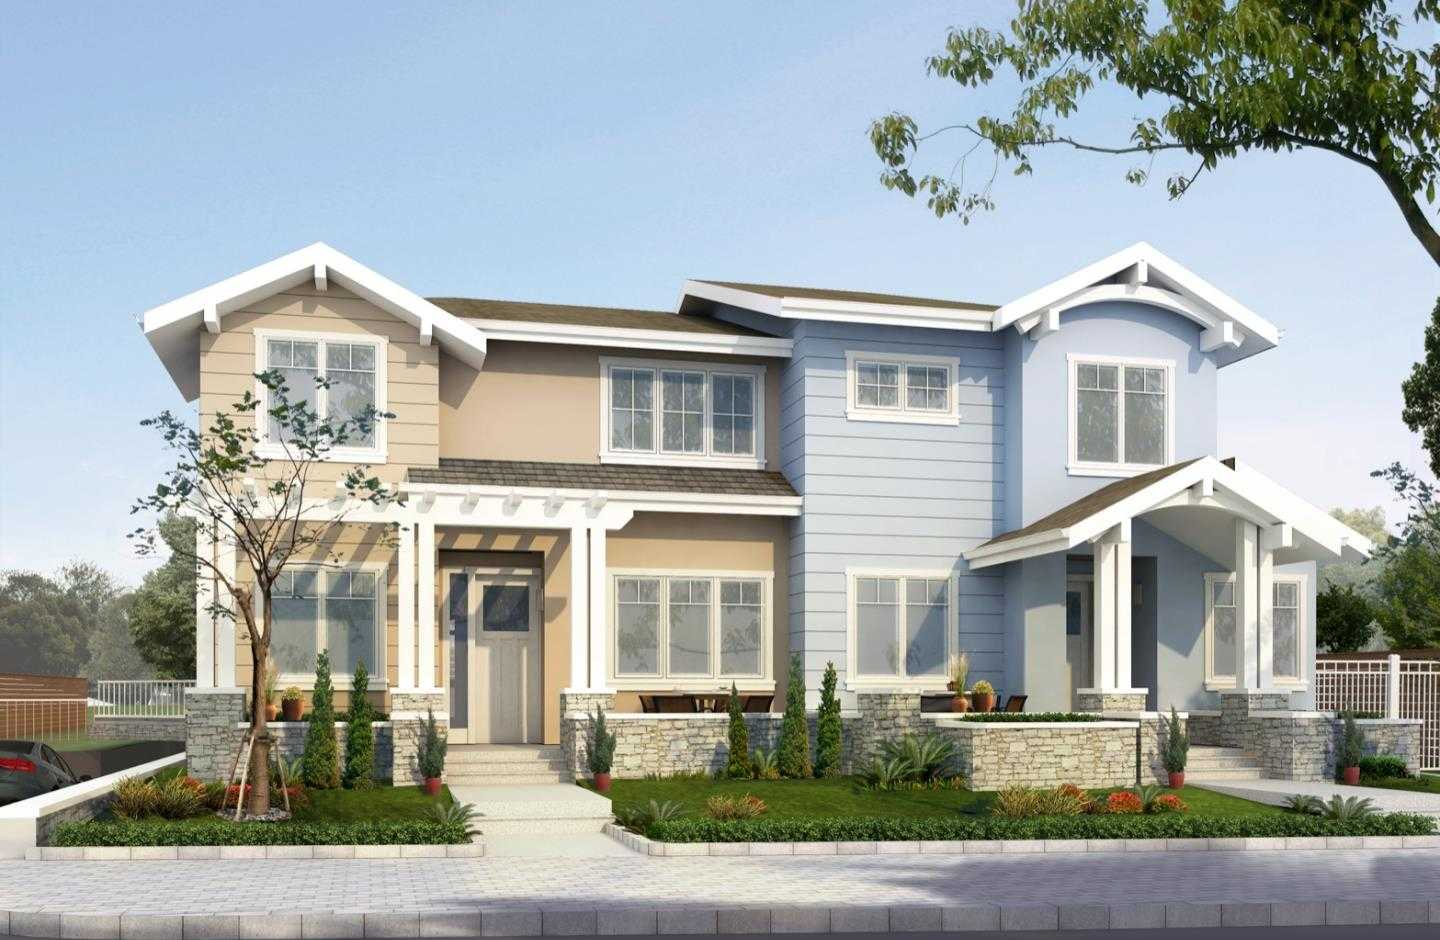 $1,852,000 - 3Br/4Ba -  for Sale in Mountain View